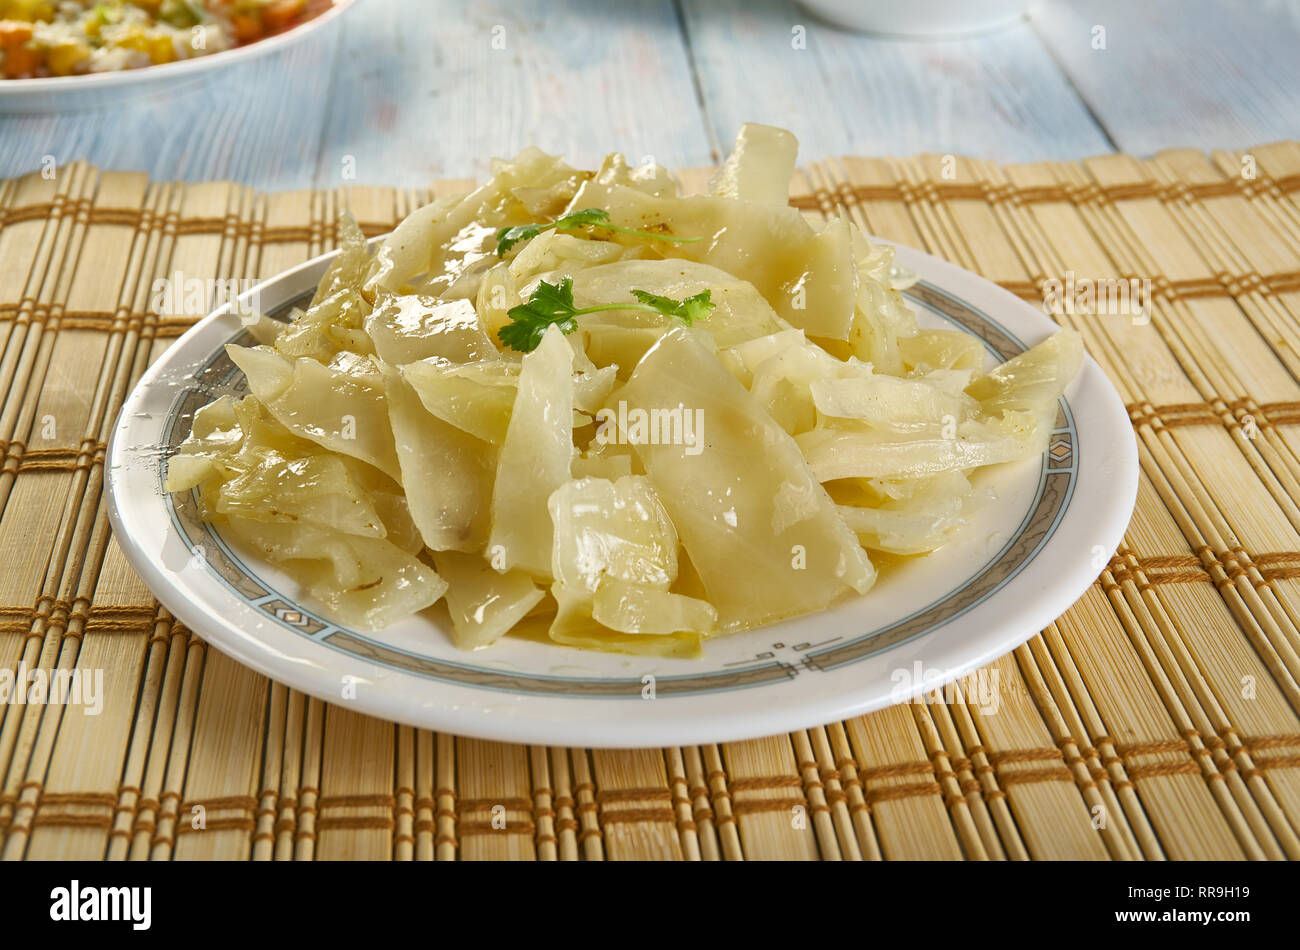 Bayrisch Kraut - Bavarian cabbage, shredded cabbage that is cooked in beef stock with pork lard, onion, apples, and seasoned with vinegar - Stock Image